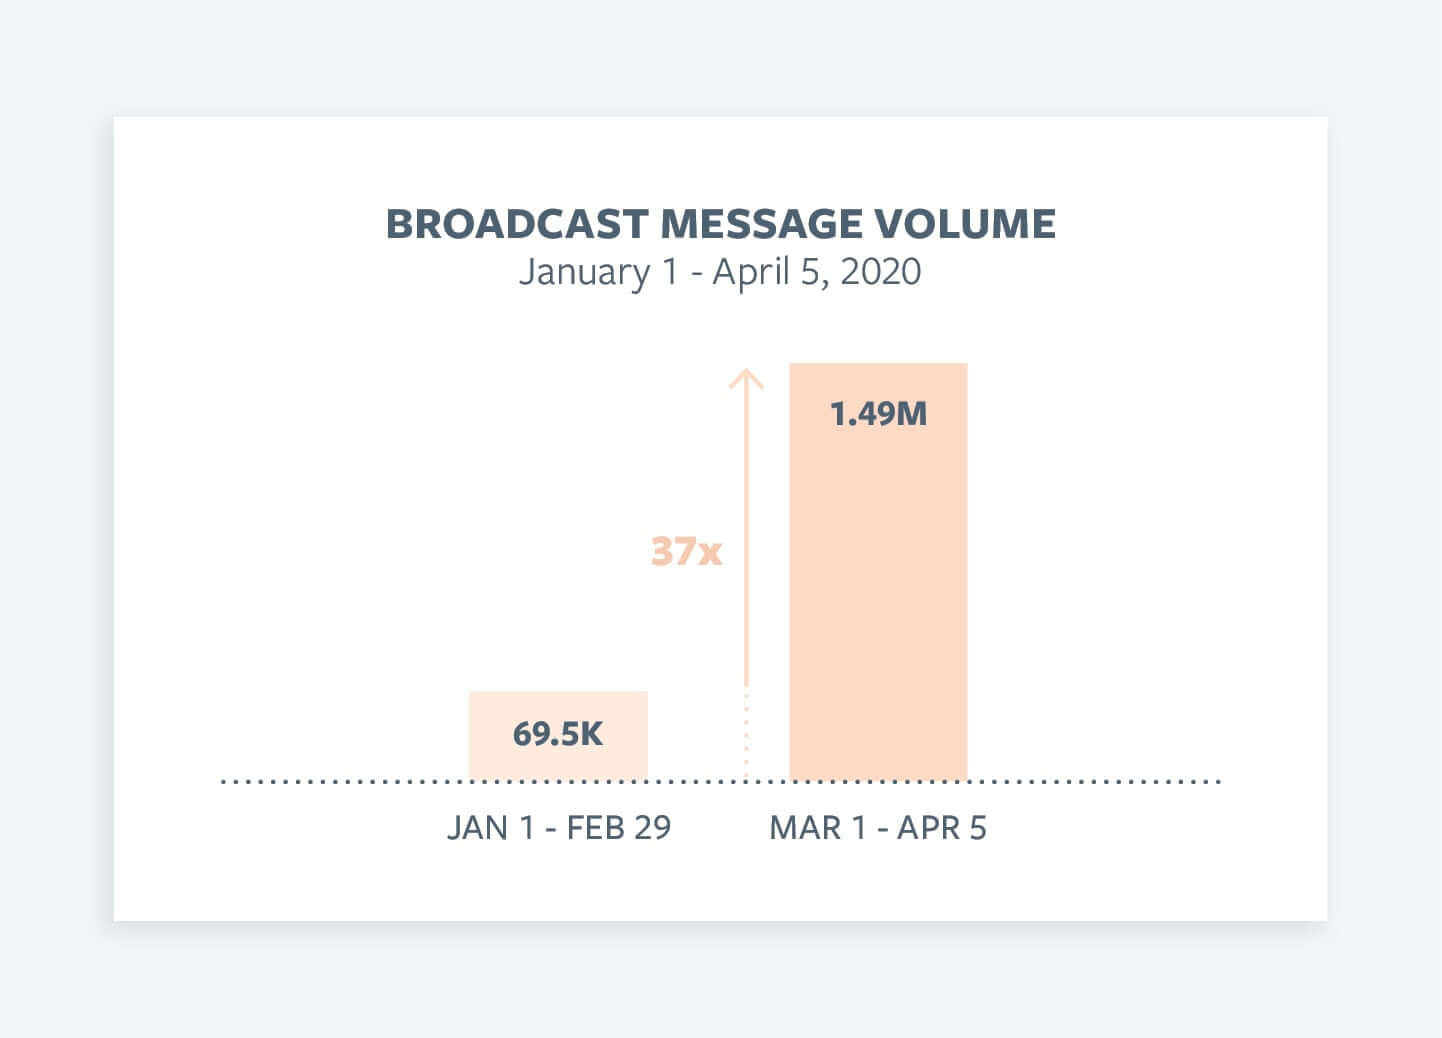 Broadcast Message Volume Graph showing importance of patient-centric telehealth in the consumerization of healthcare